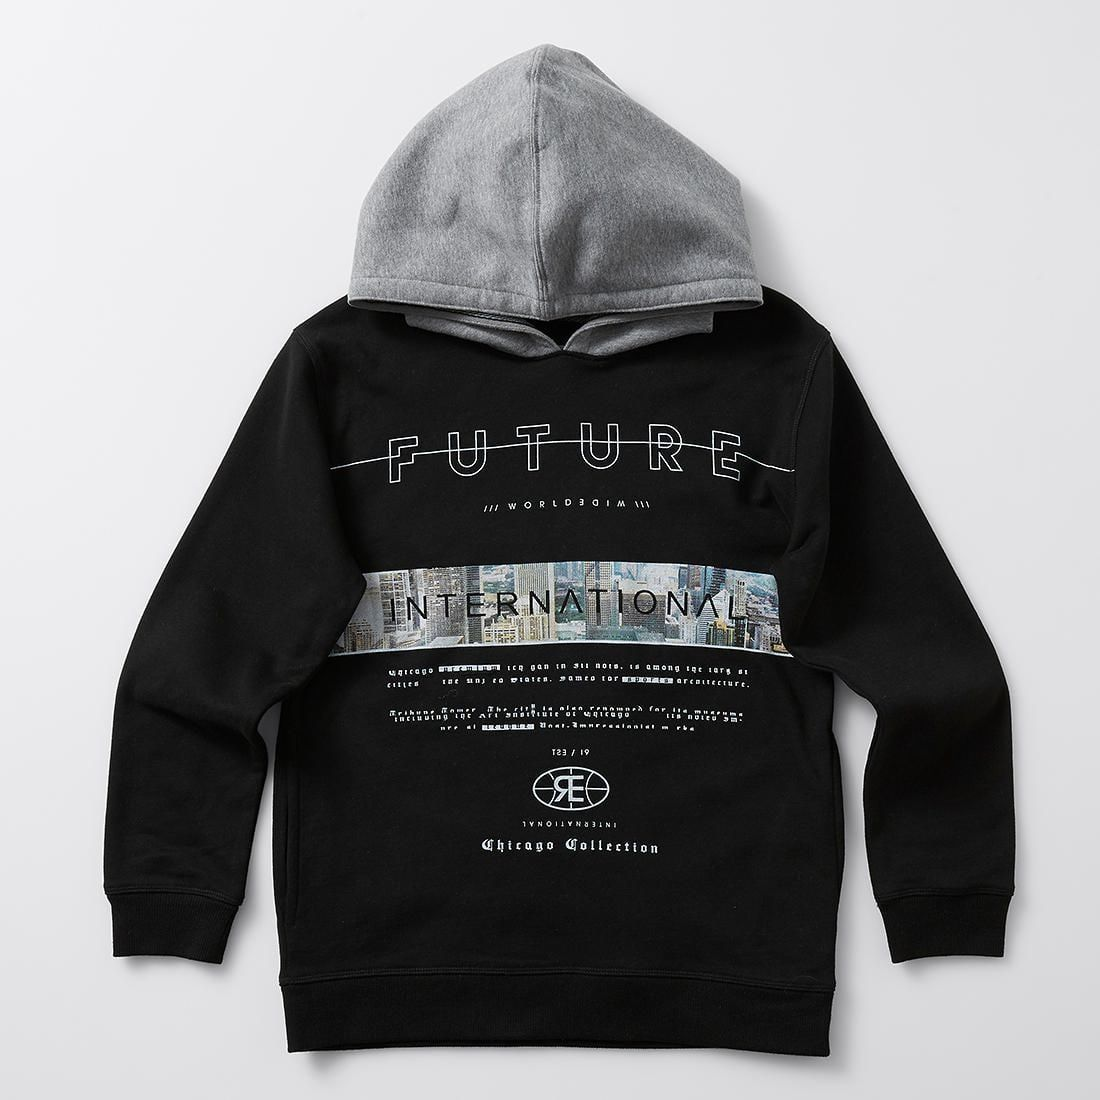 3D Printed Hoodie Sweatshirts,Cityscape with Several,Hoodie Casual Pocket Sweatshirt